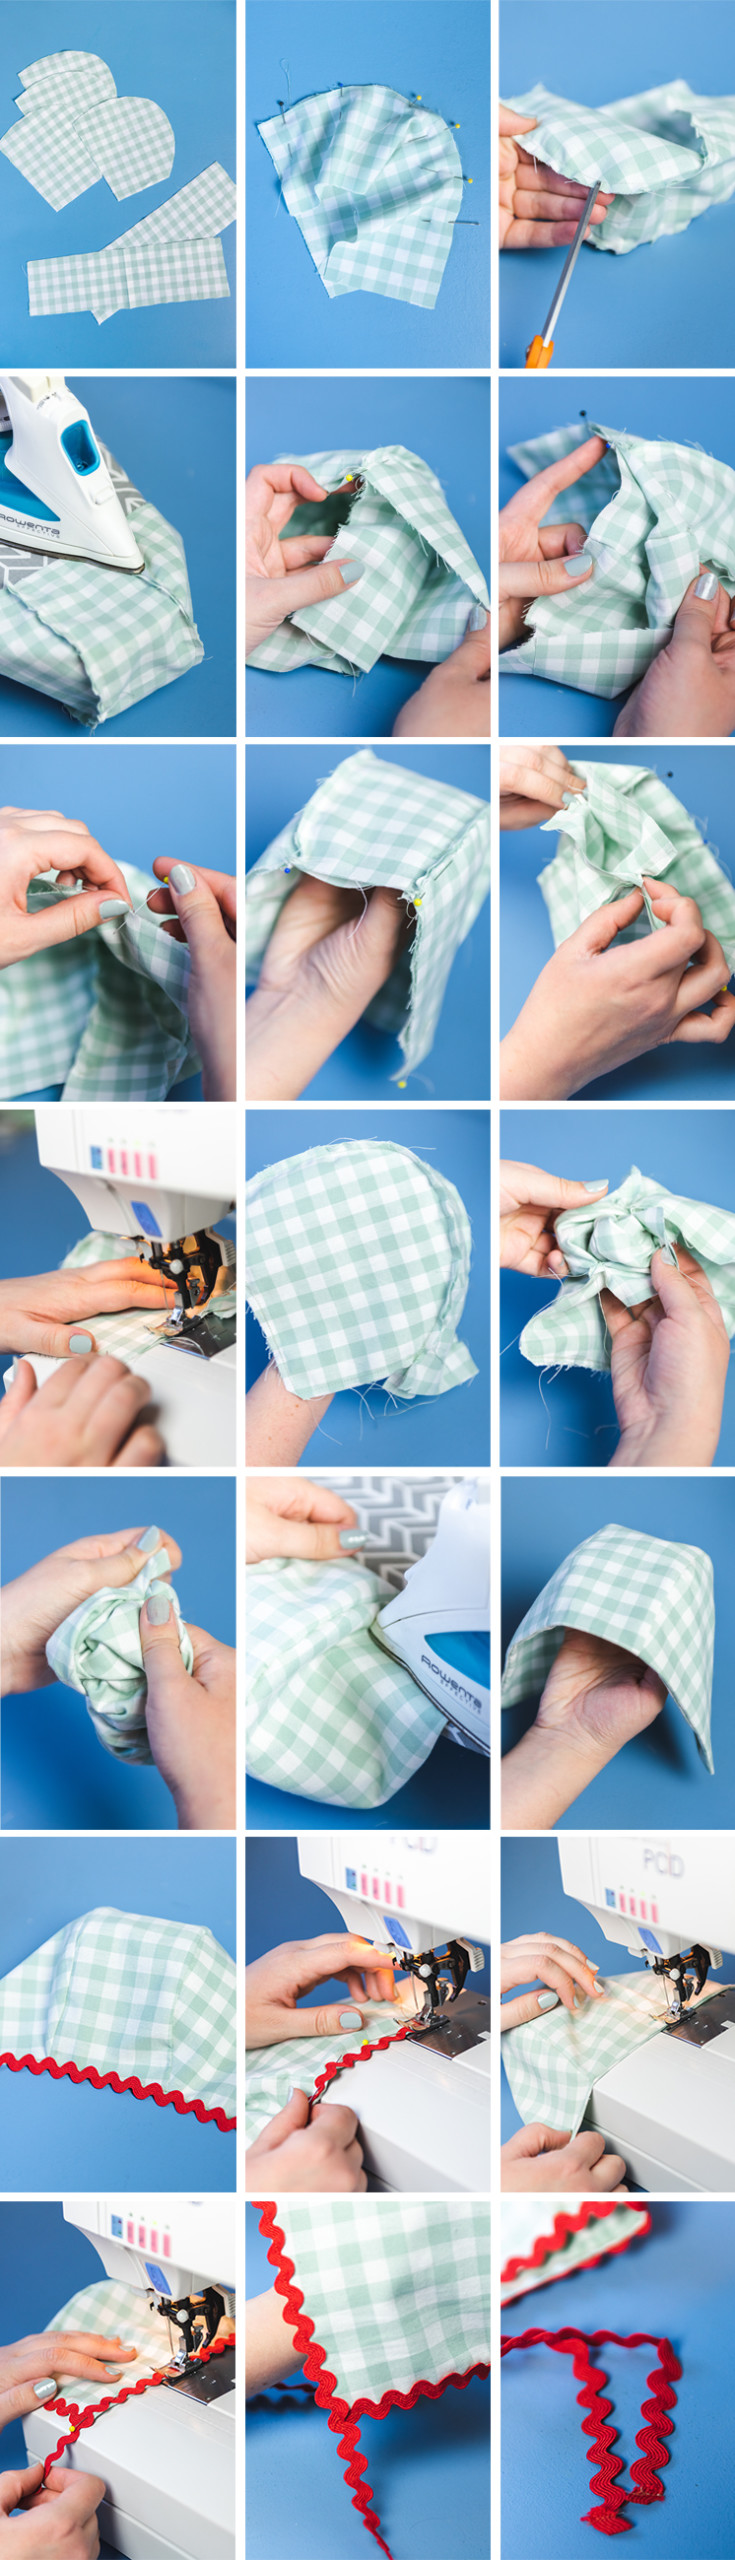 step by step photos of bonnet construction